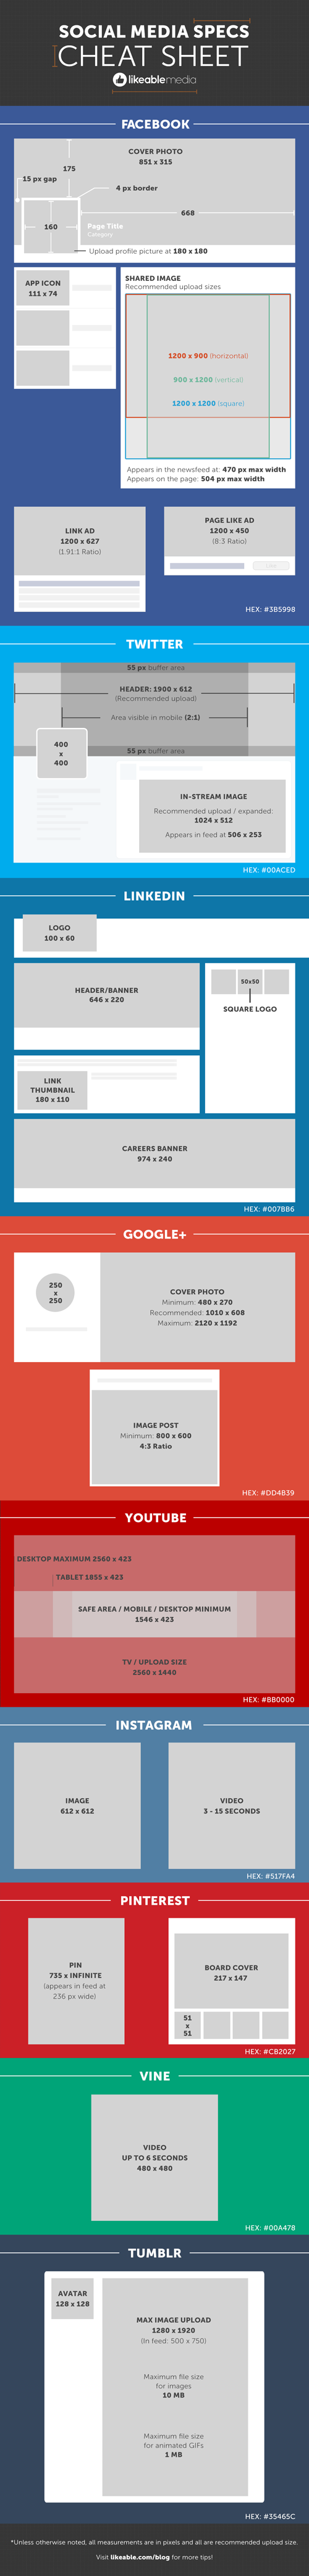 Image size cheat sheet for photo and graphic sizes on all social media - Facebook, Google +, Twitter, Instagram, Linked In, YouTube, Pinterest, Vine, & Tumblr